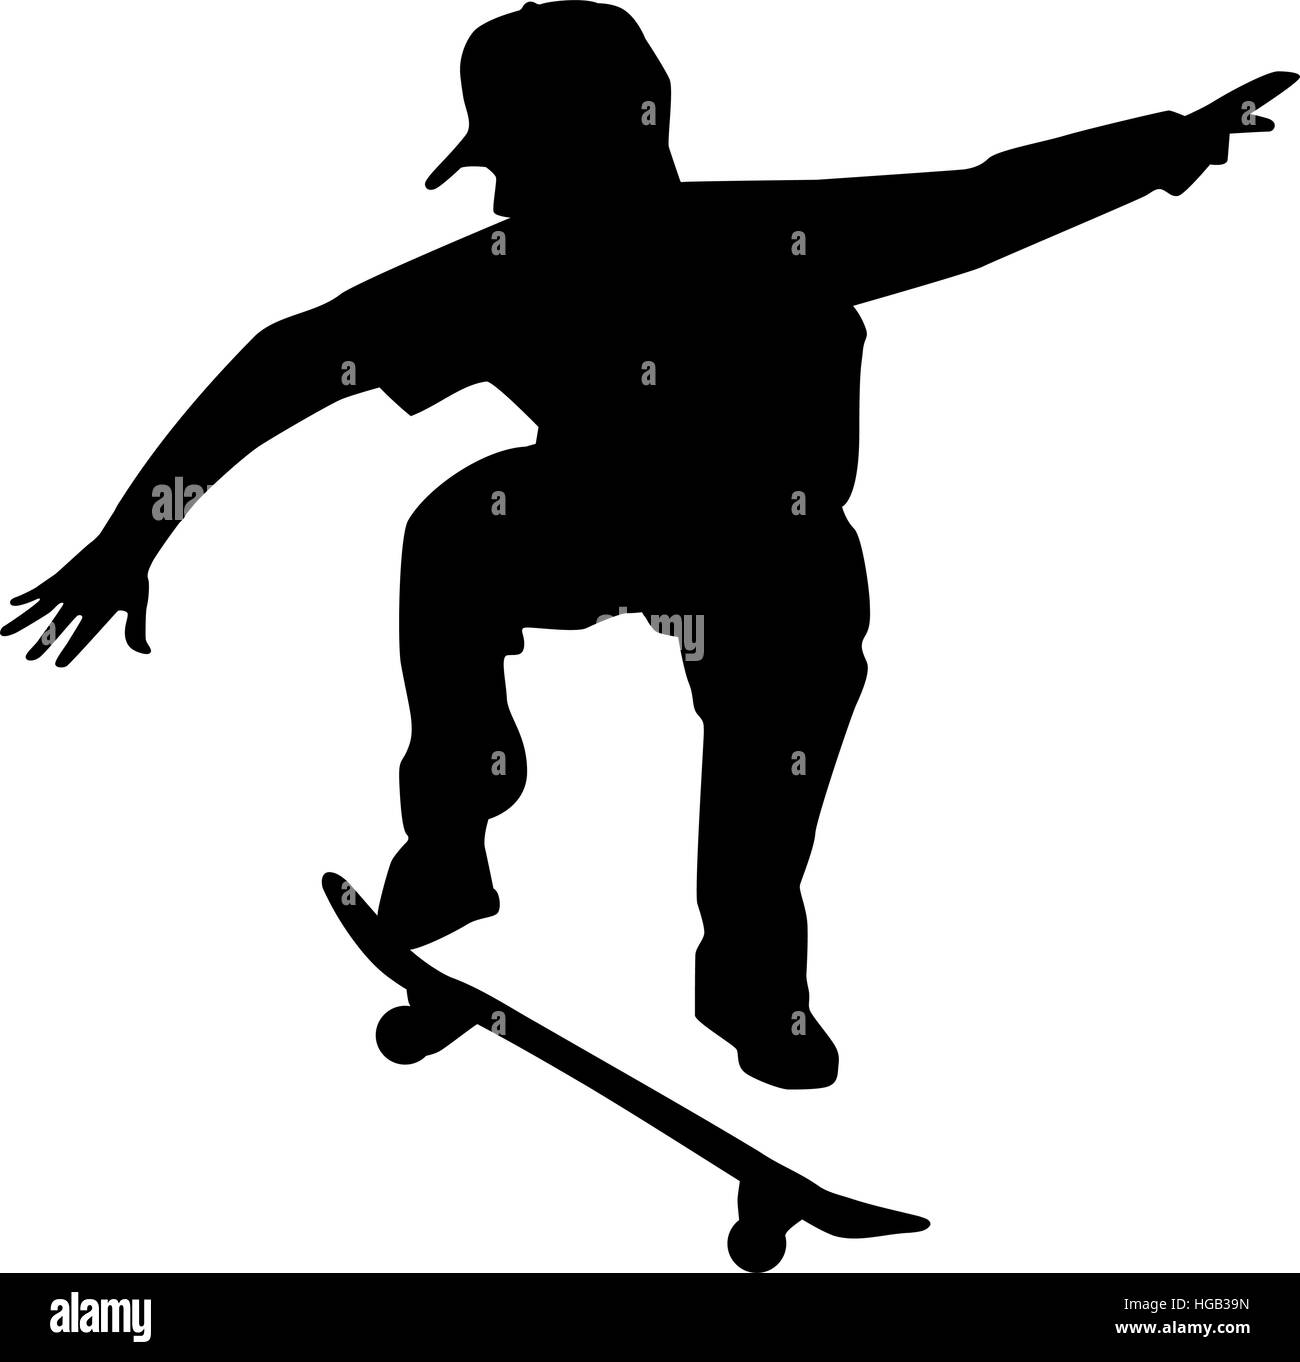 Skateboarder silhouette Stock Vector Art & Illustration ...